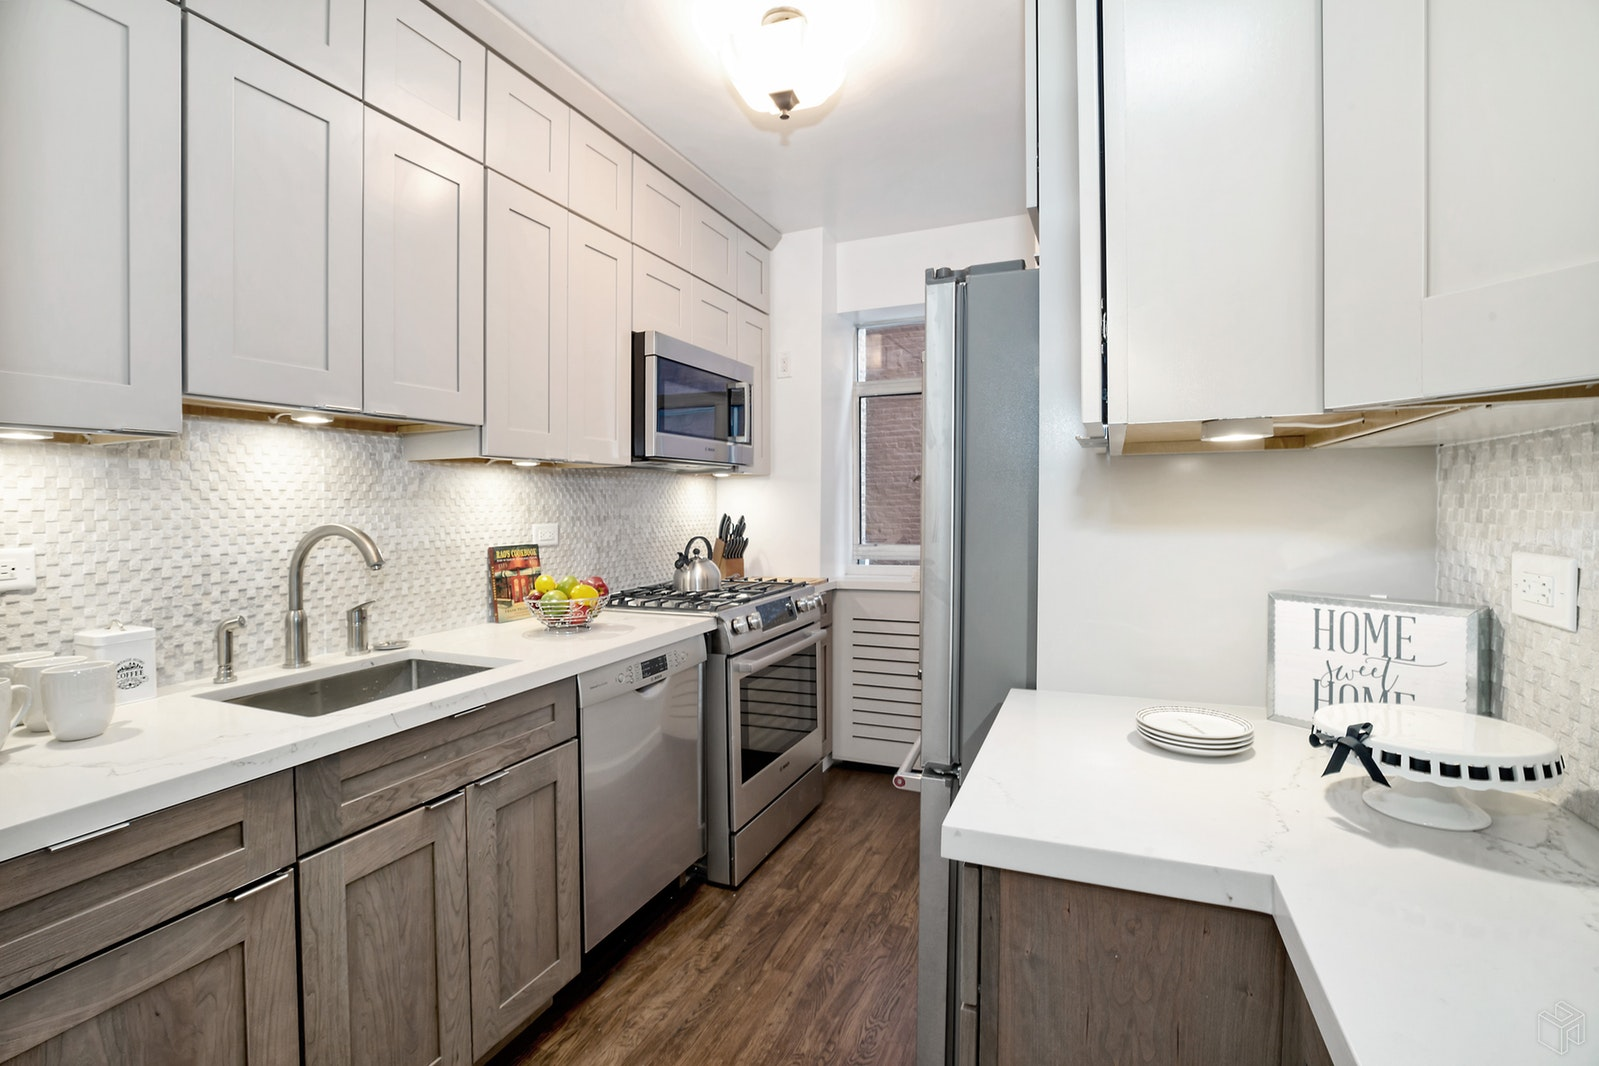 15 West 84th Street 1h, Upper West Side, NYC, 10024, $1,125,000, Property For Sale, Halstead Real Estate, Photo 3